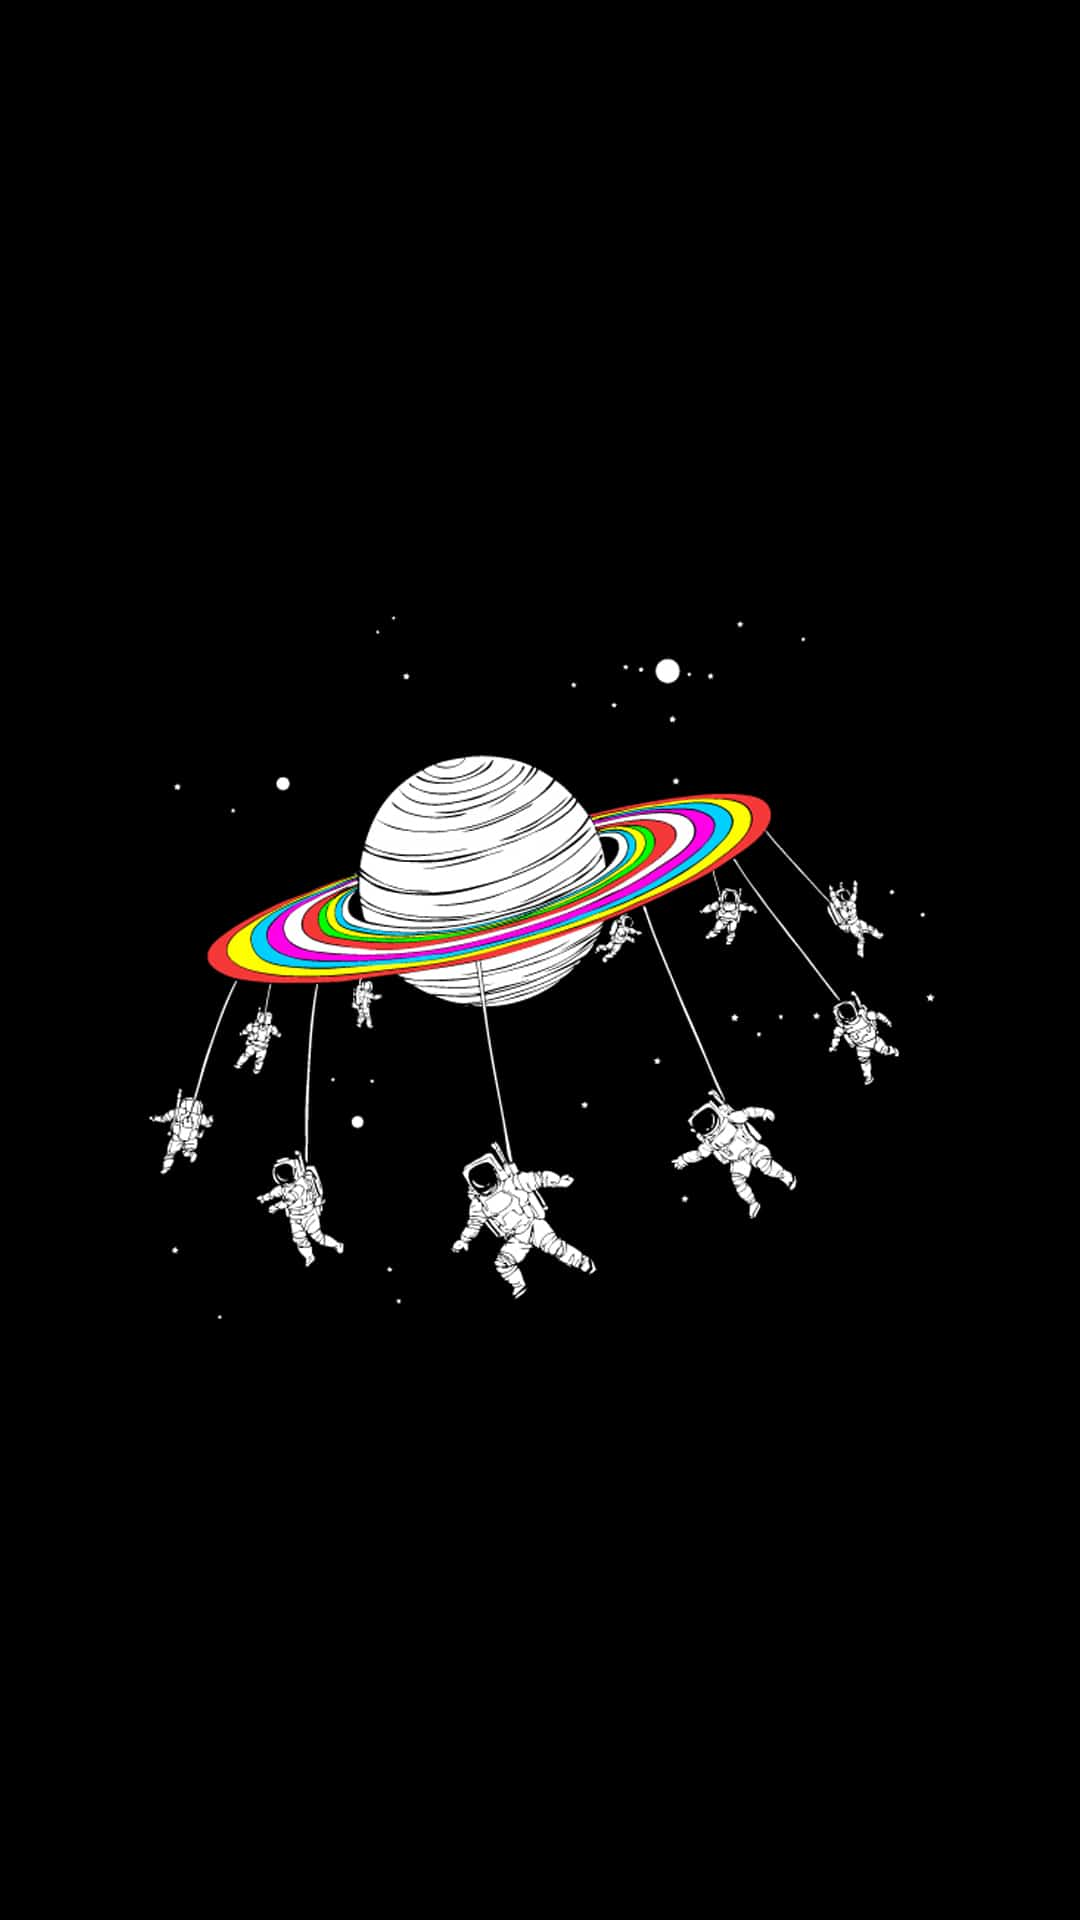 space-astronauts-go-round-planet-android-wallpaper